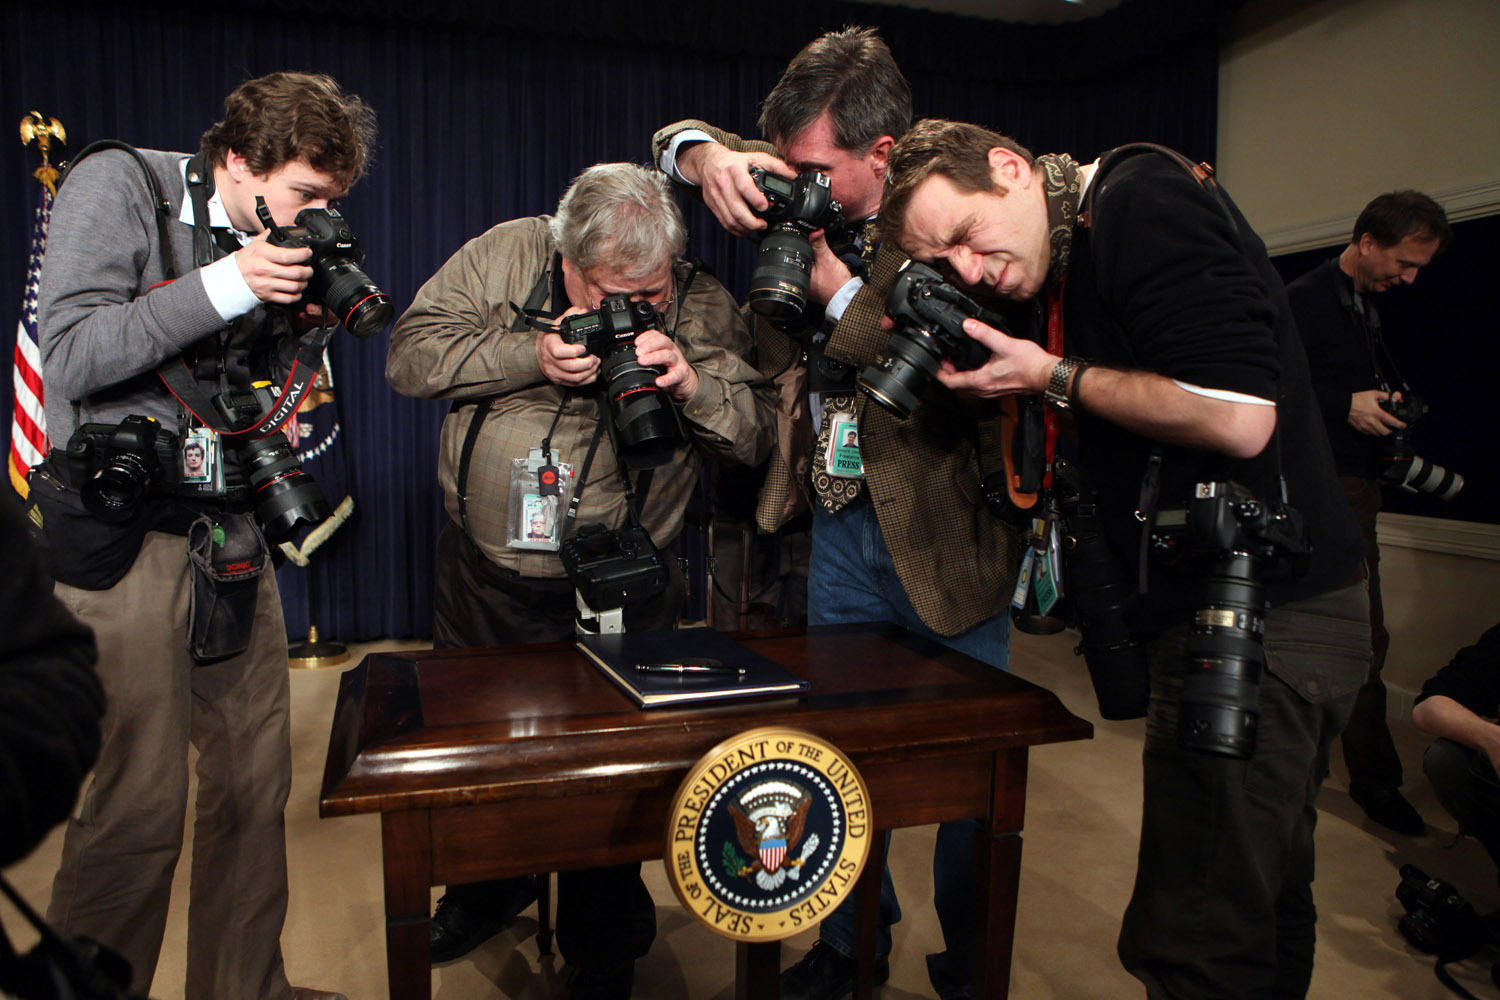 Photographers take pictures of the folio containing an executive order and the president's pen, just before President Obama signed it on January 21, 2009.